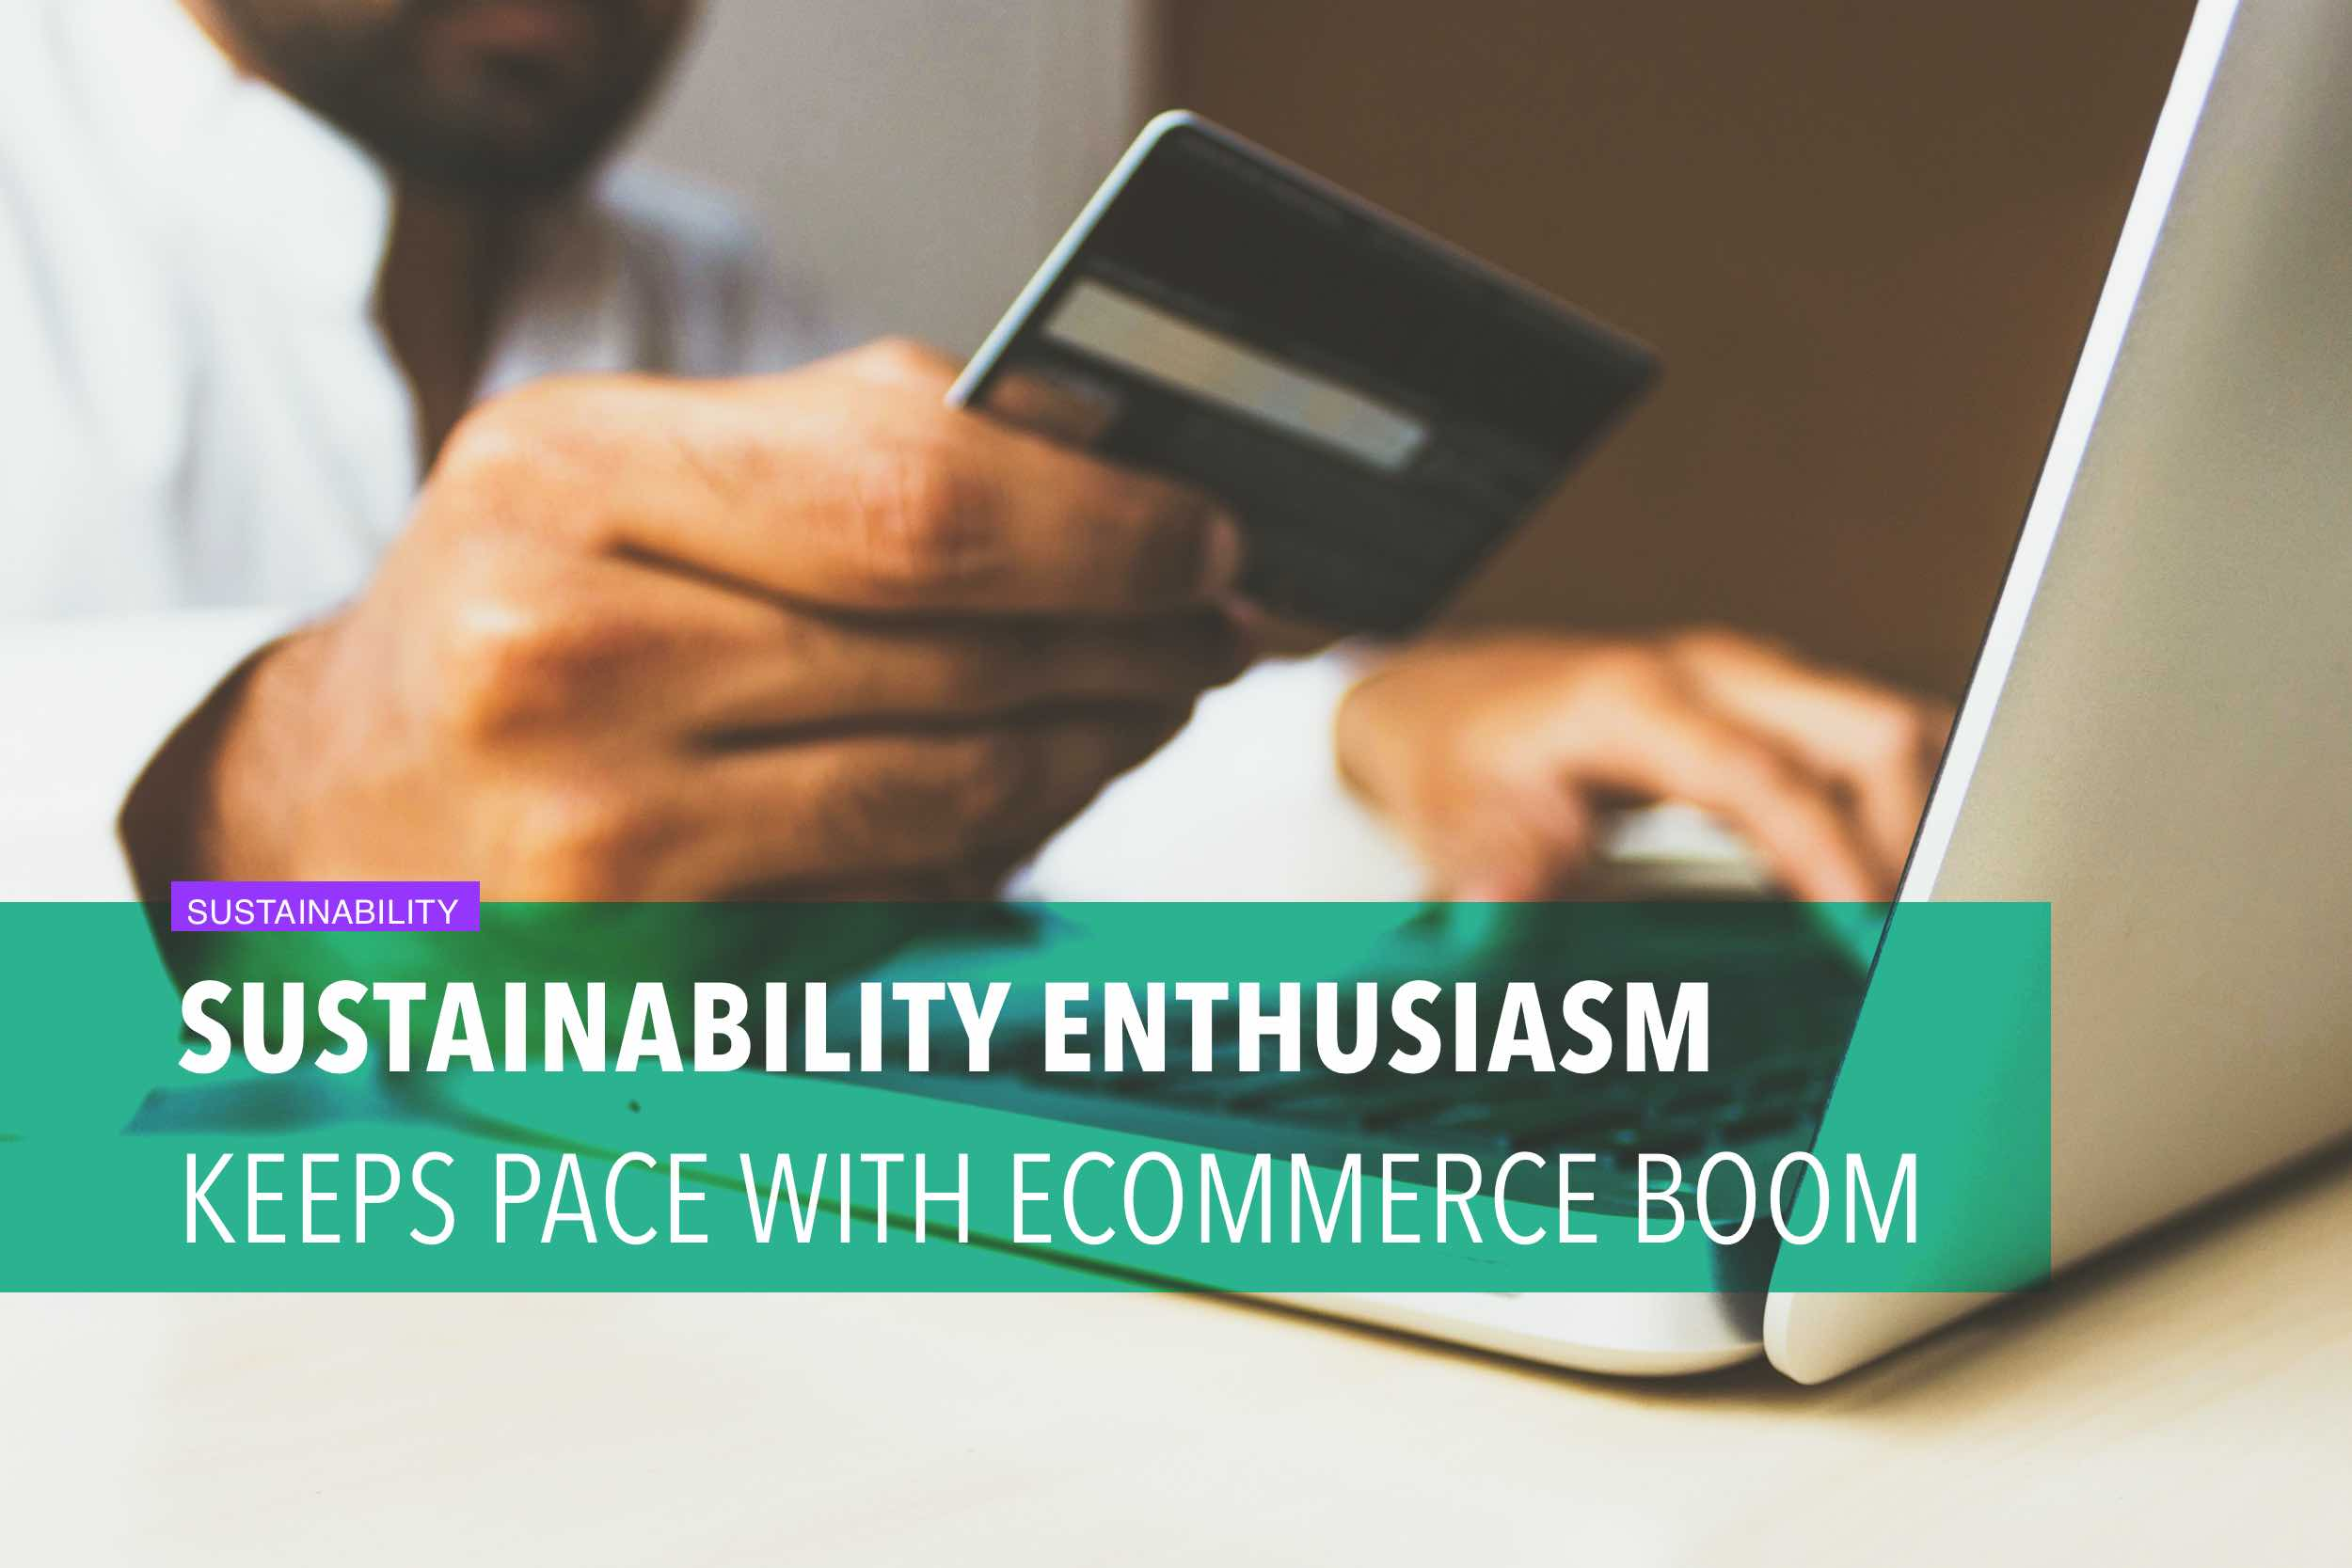 Sustainability enthusiasm keeps pace with ecommerce boom